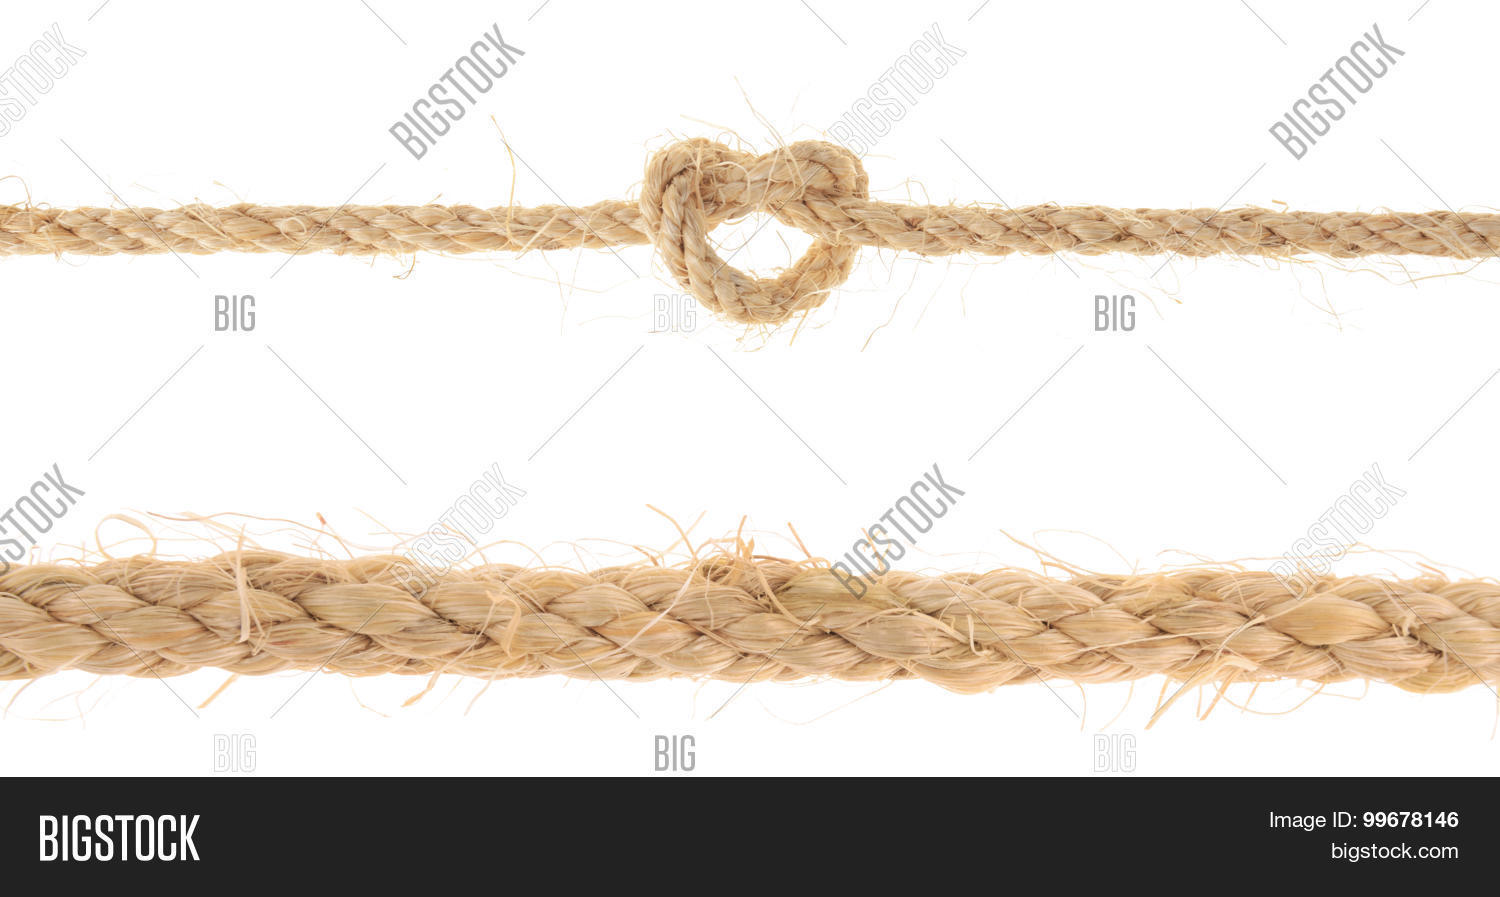 Set Jute Rope Reef Image & Photo (Free Trial) | Bigstock